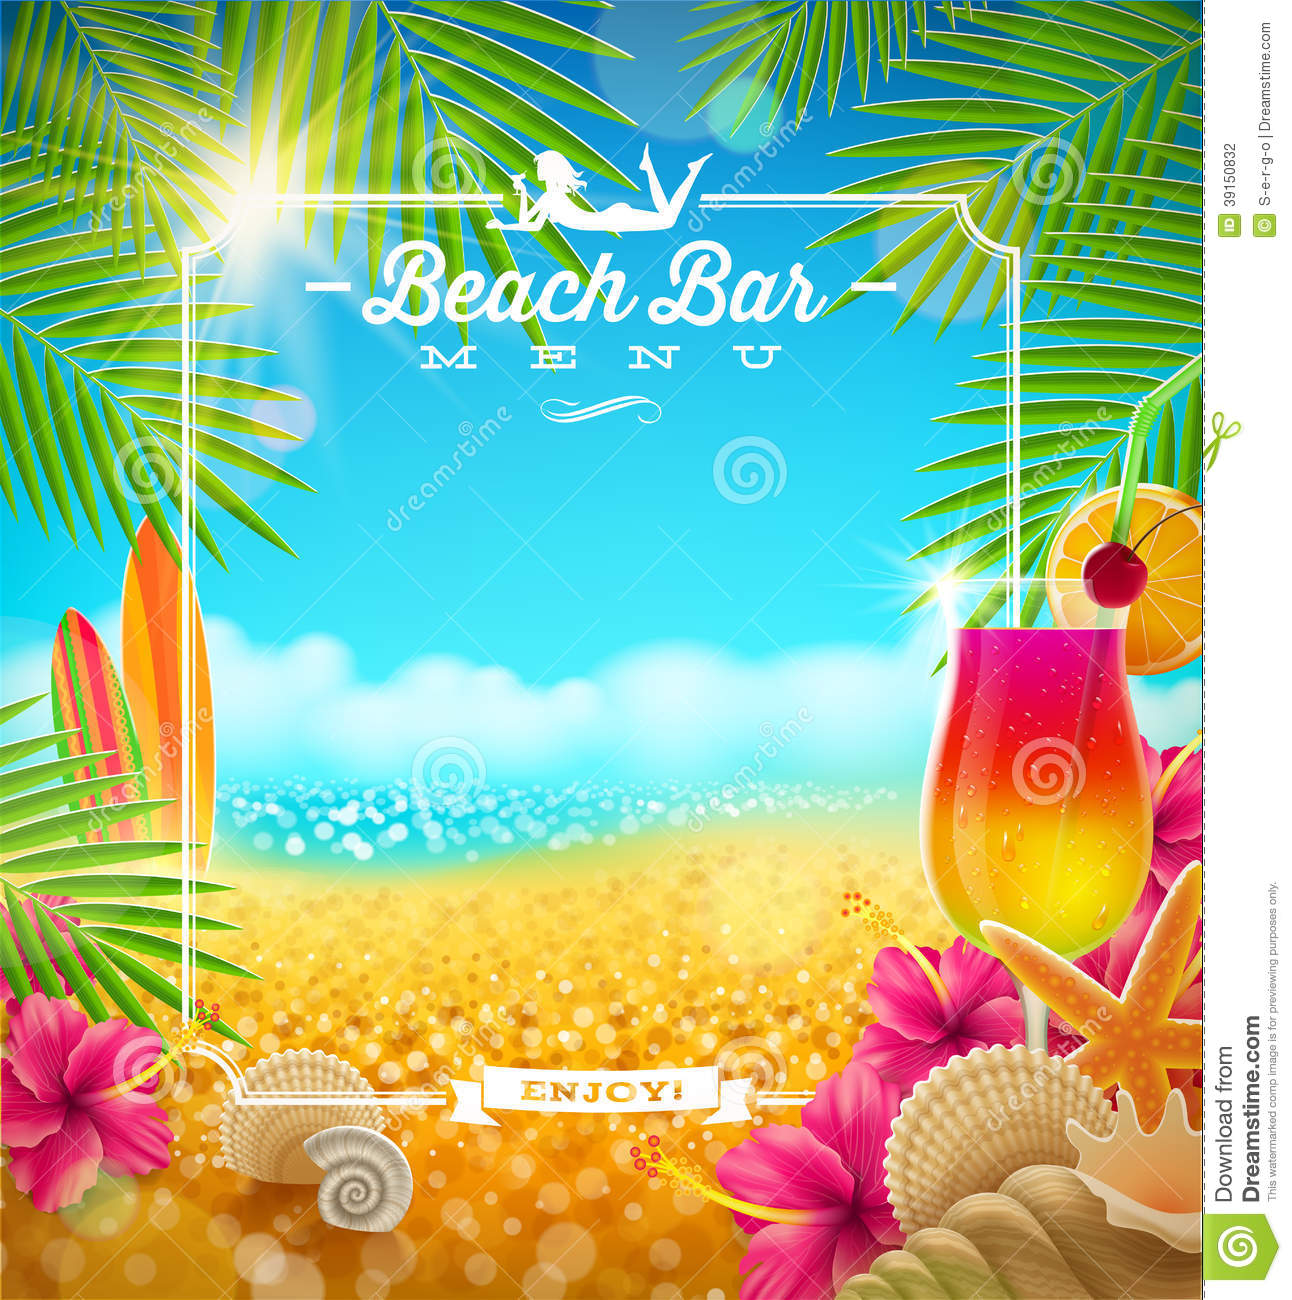 Beach Bar Menu Stock Illustrations 4 009 Beach Bar Menu Stock Illustrations Vectors Clipart Dreamstime